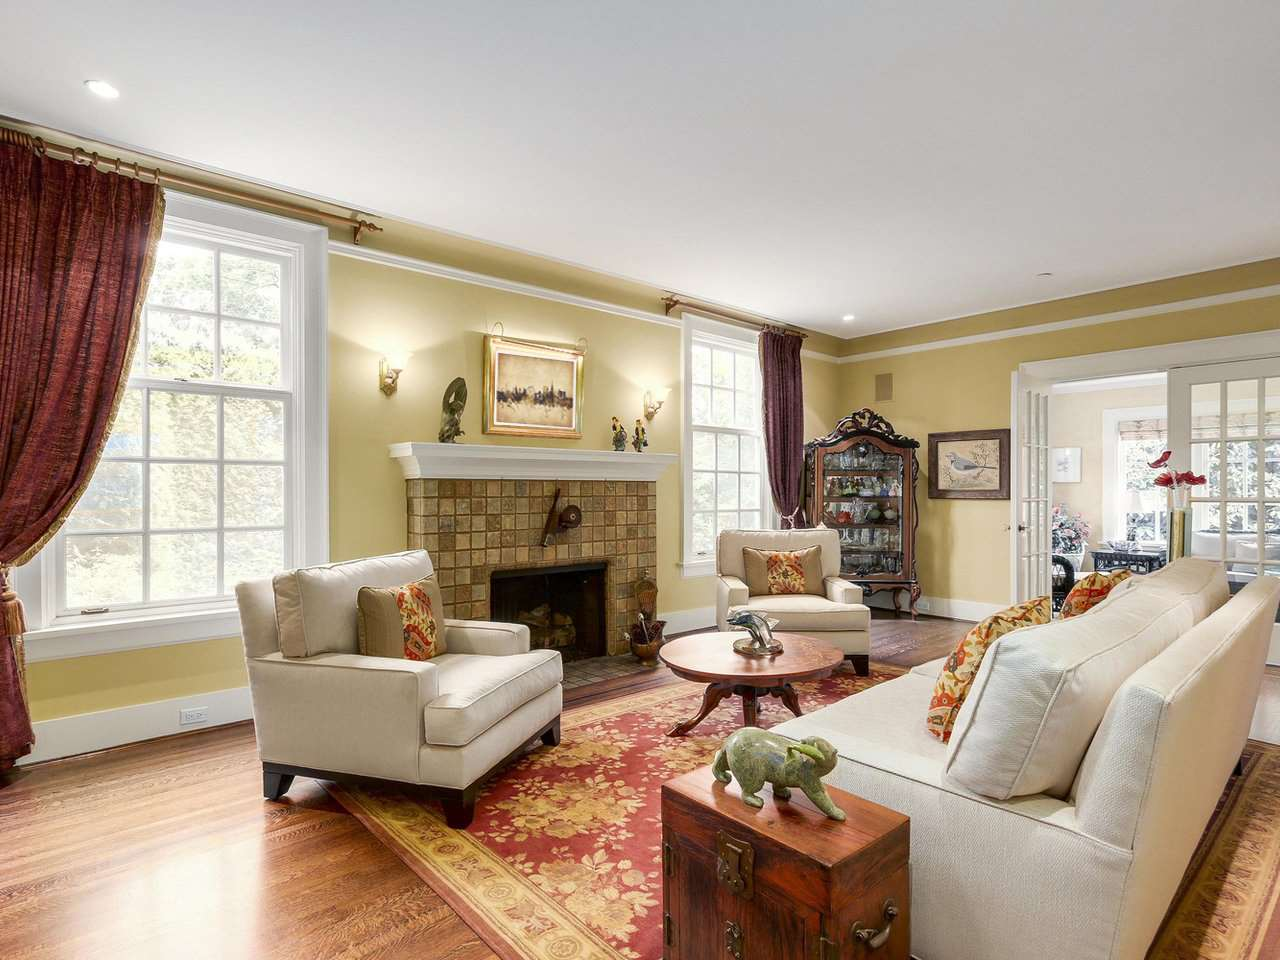 Detached at 4490 PINE CRESCENT, Vancouver West, British Columbia. Image 1